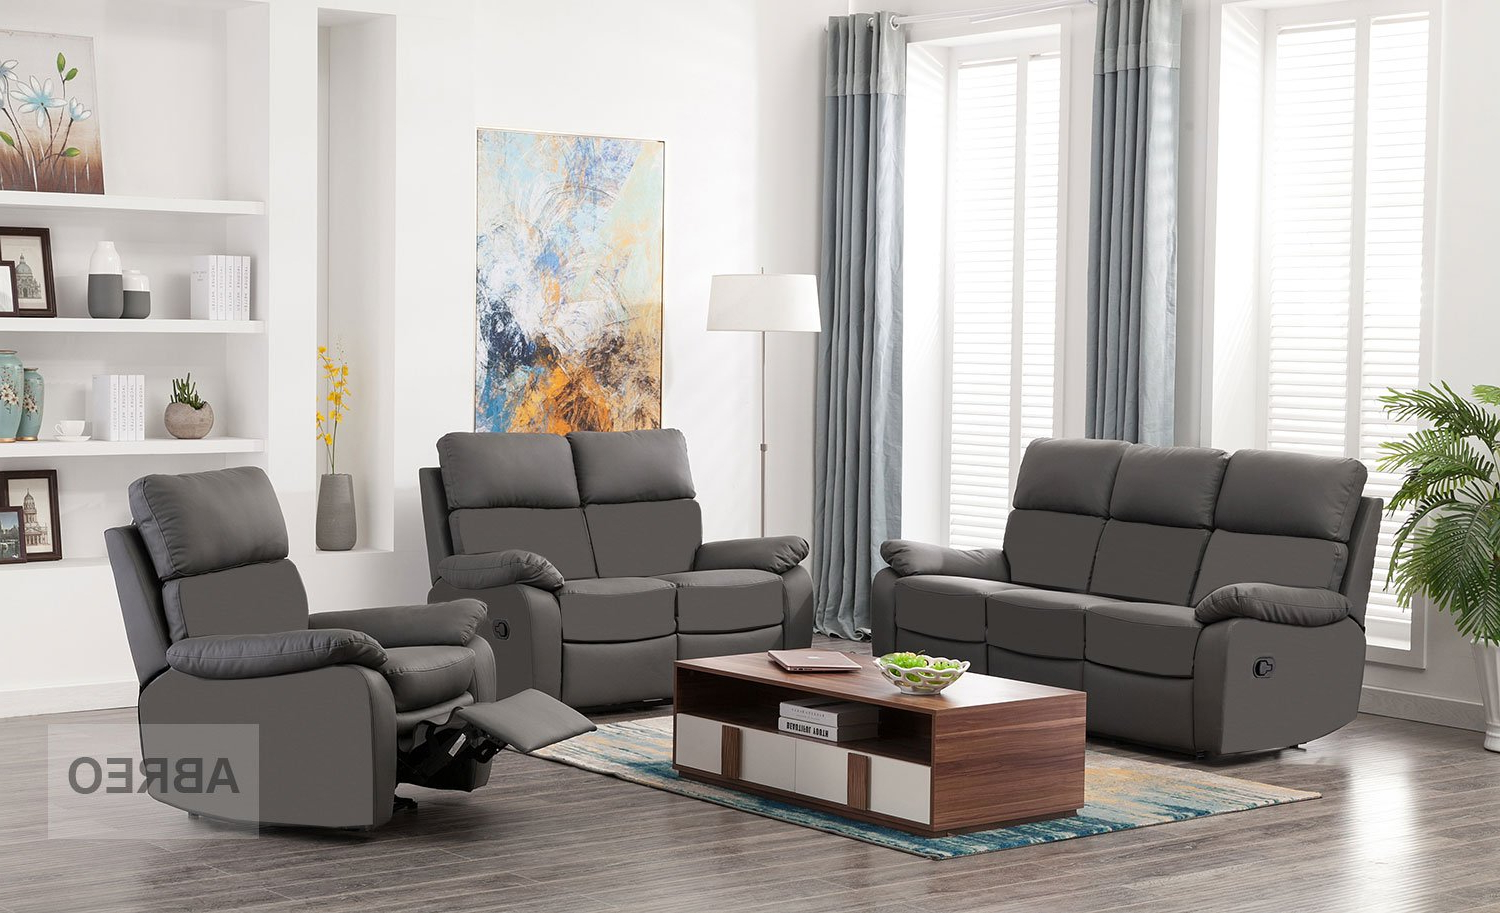 Amala Dark Grey Leather Reclining Swivel Chairs Intended For Famous Seater Leather Recliner Sofa Reclining Armchairs Living Room (View 15 of 20)